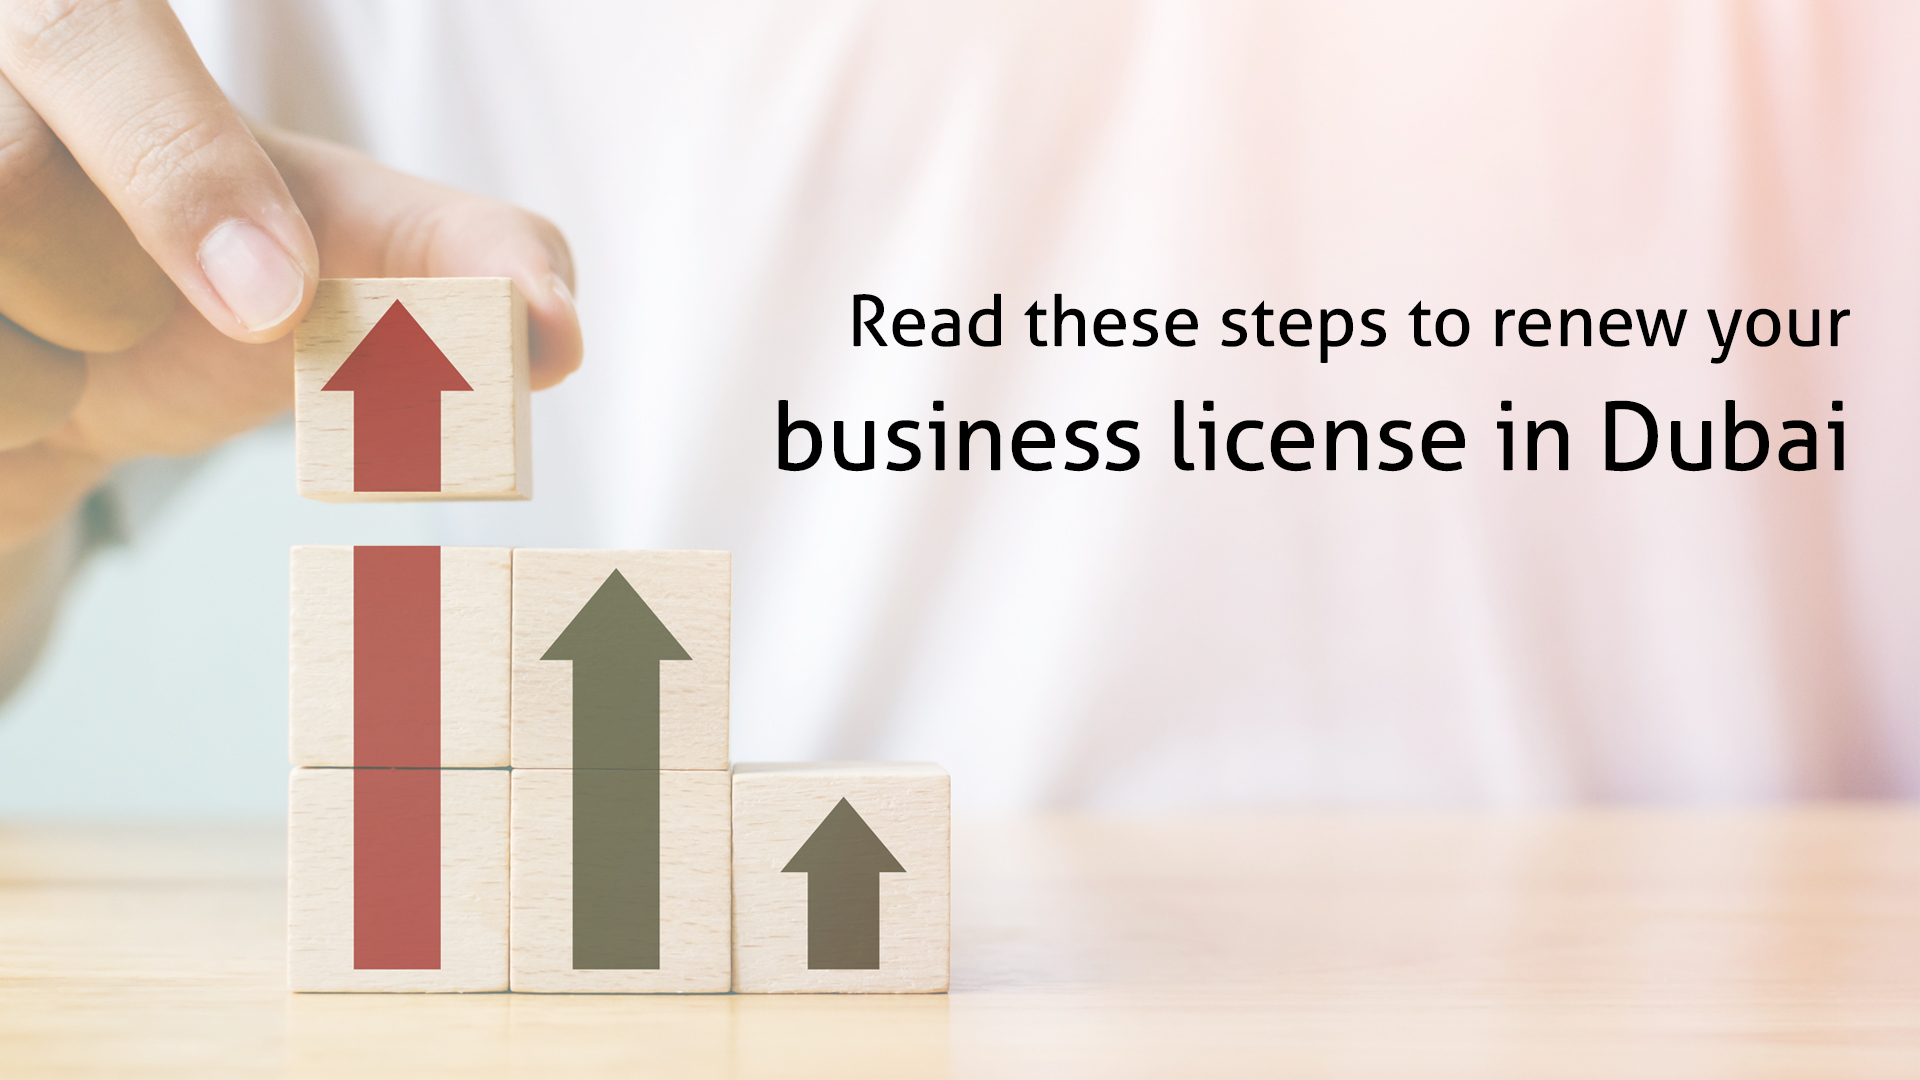 Read these steps to renew your business license in Dubai